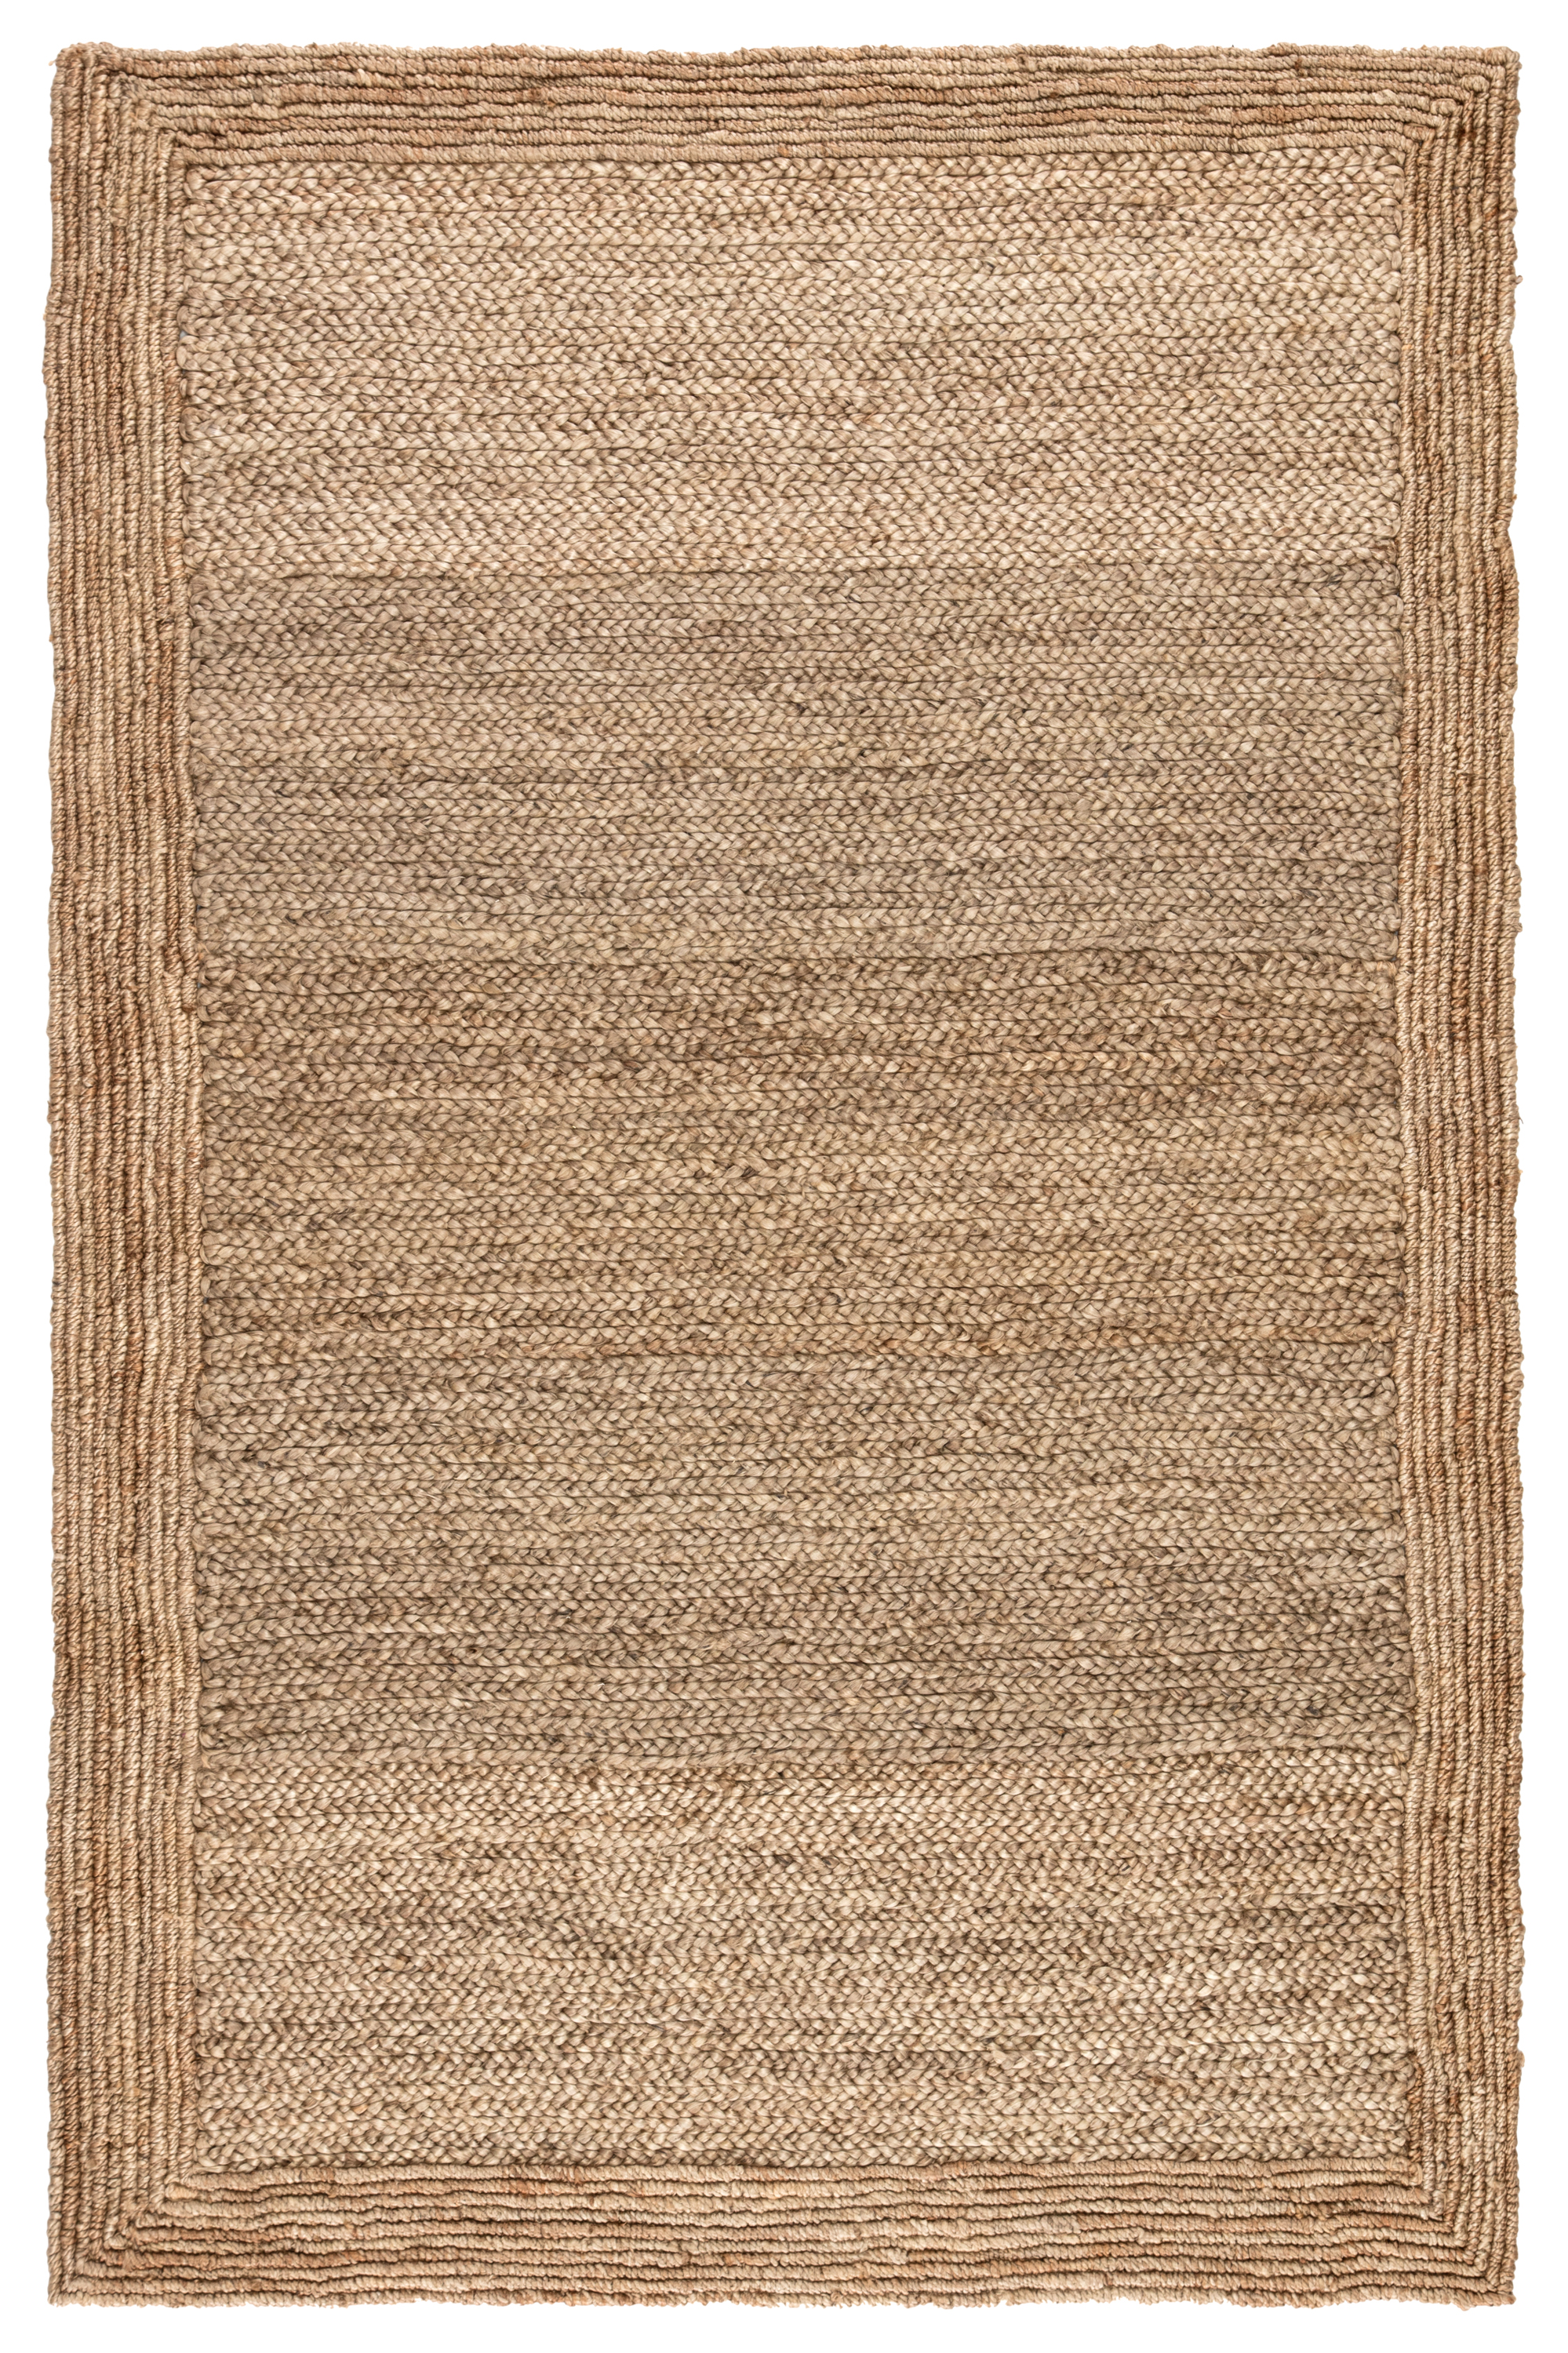 Jaipur Living Aboo Natural Solid Beige Area Rug